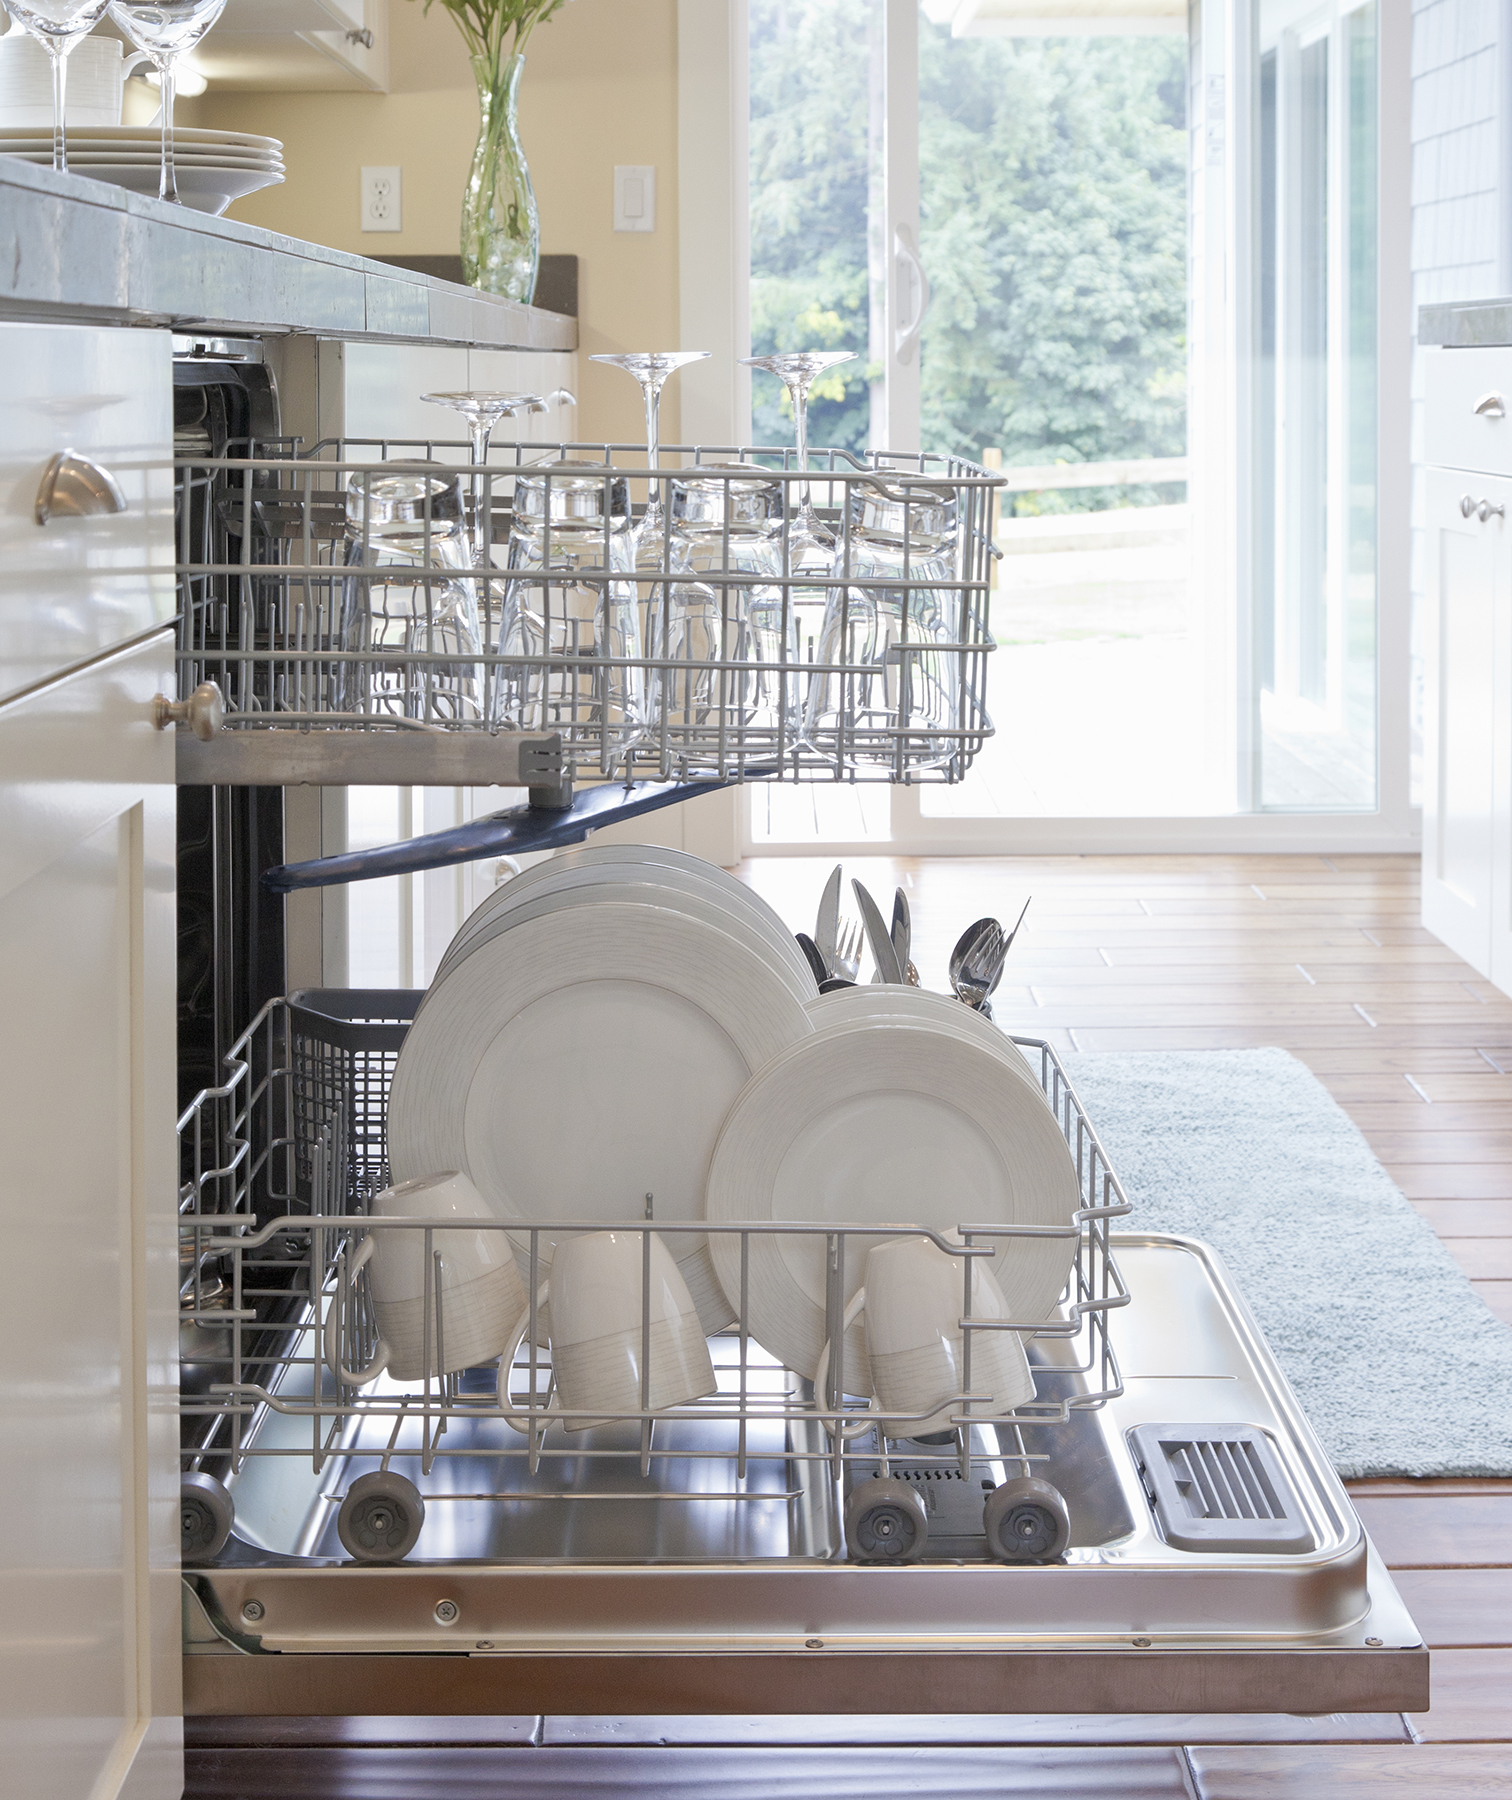 A Stinky Dishwasher